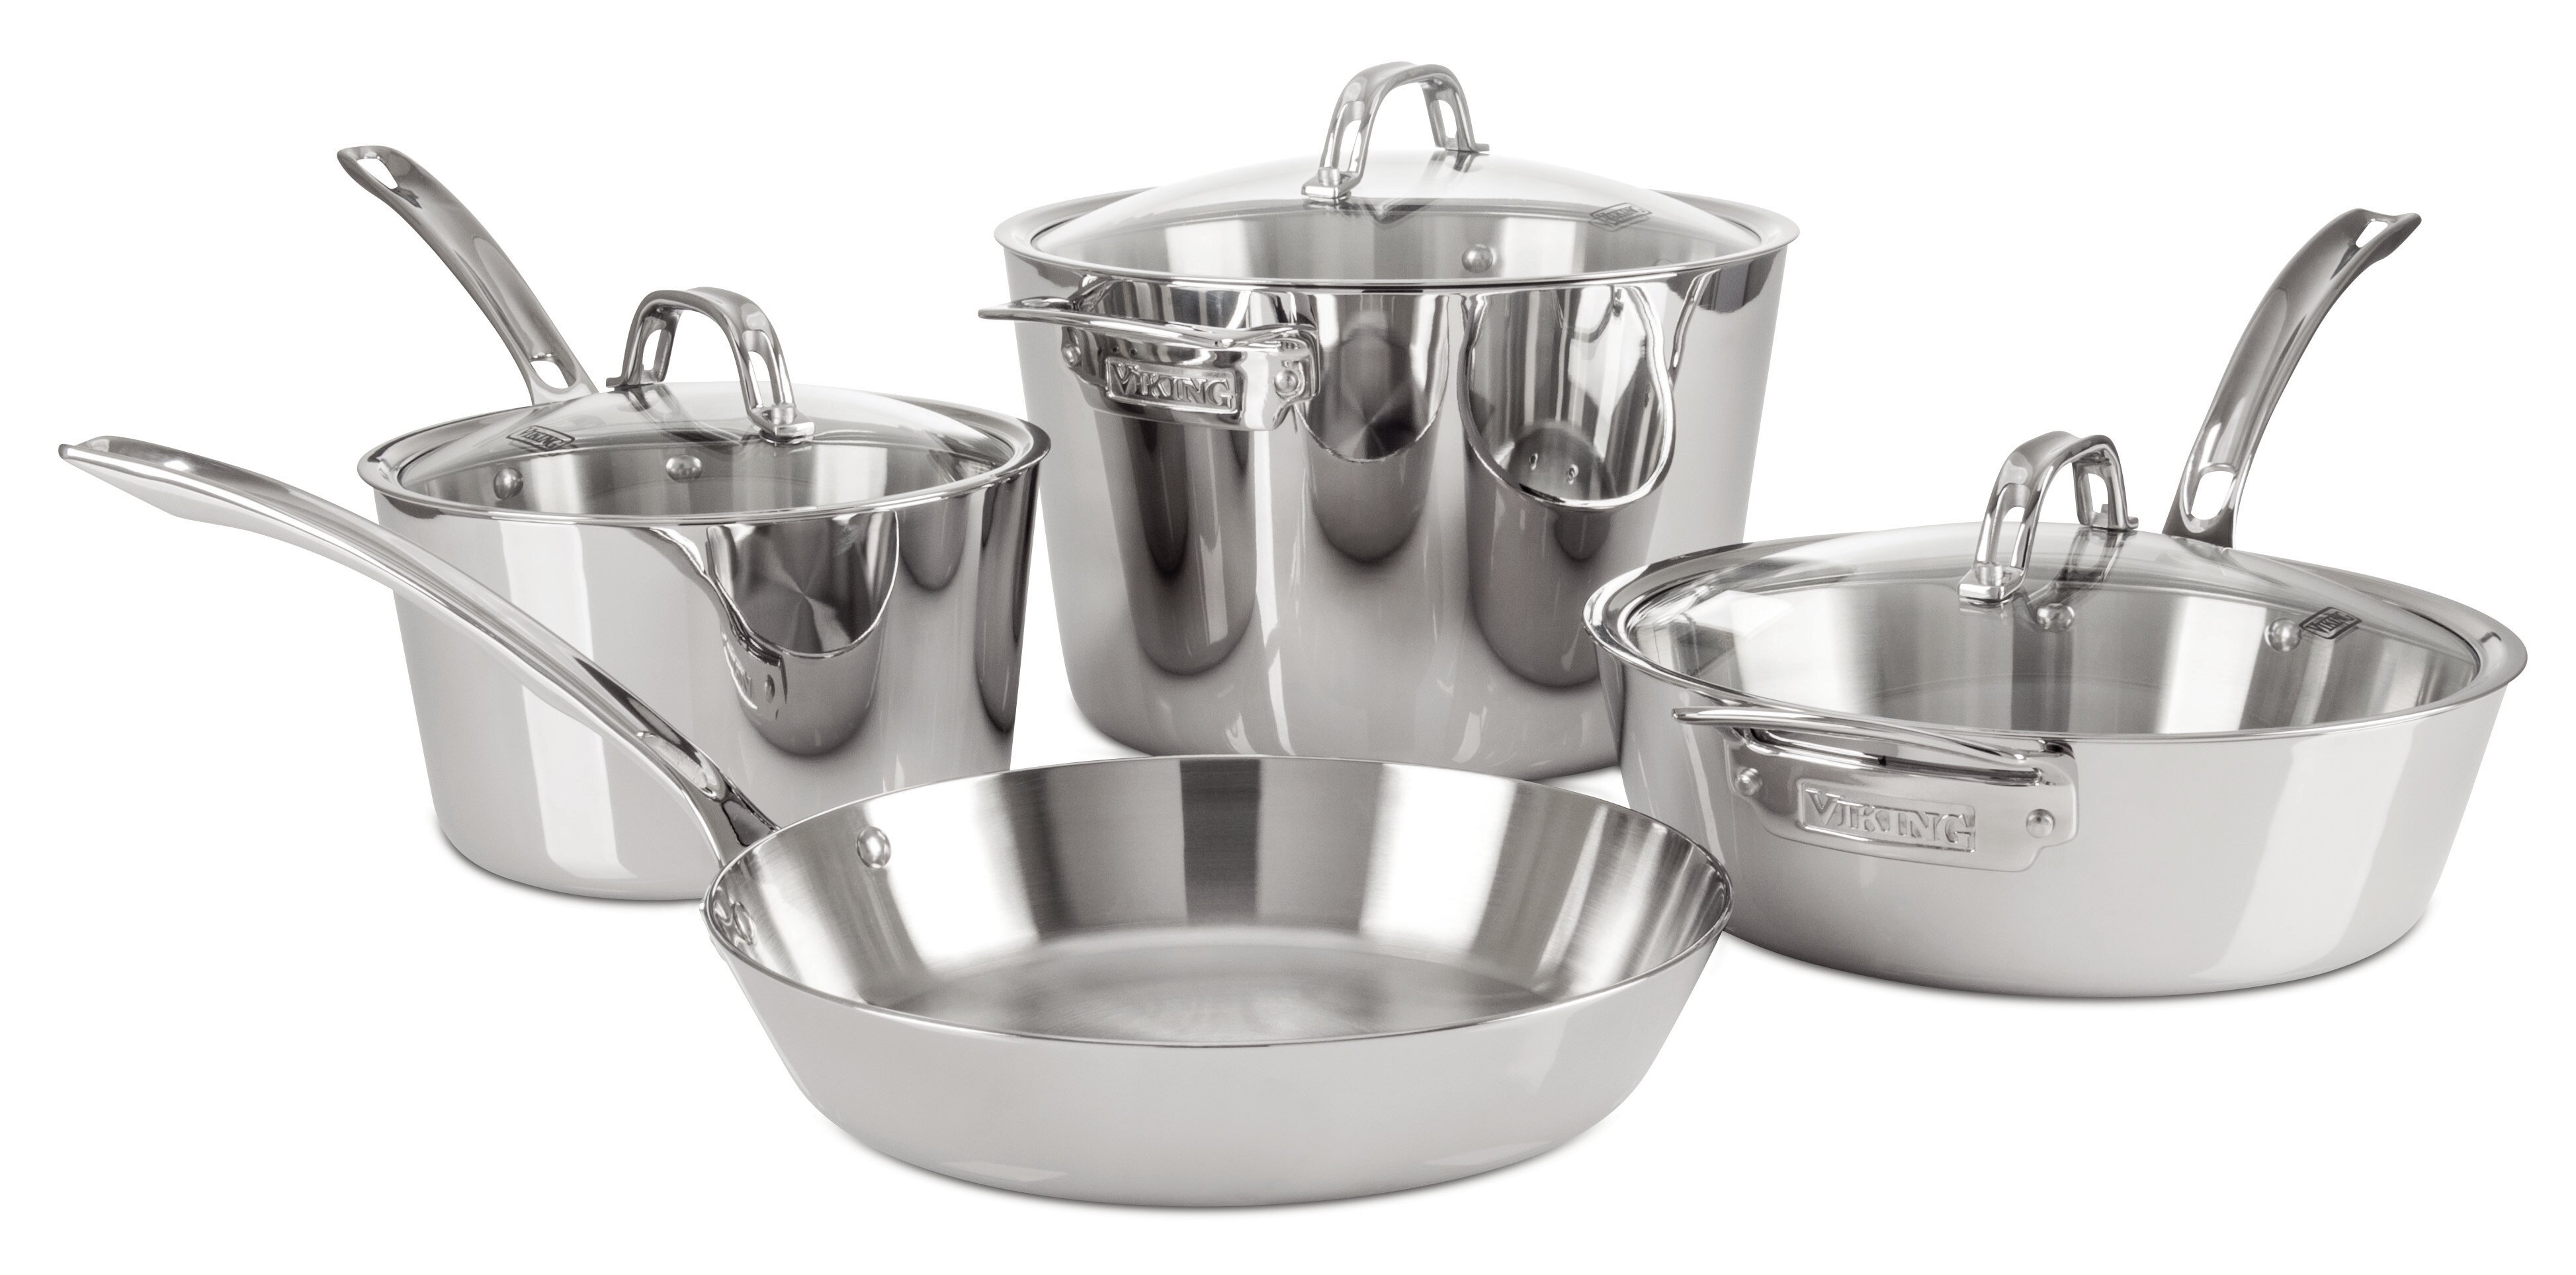 Viking Contemporary 3-Ply Stainless Steel Cookware Set 7 Piece 4513-3S07